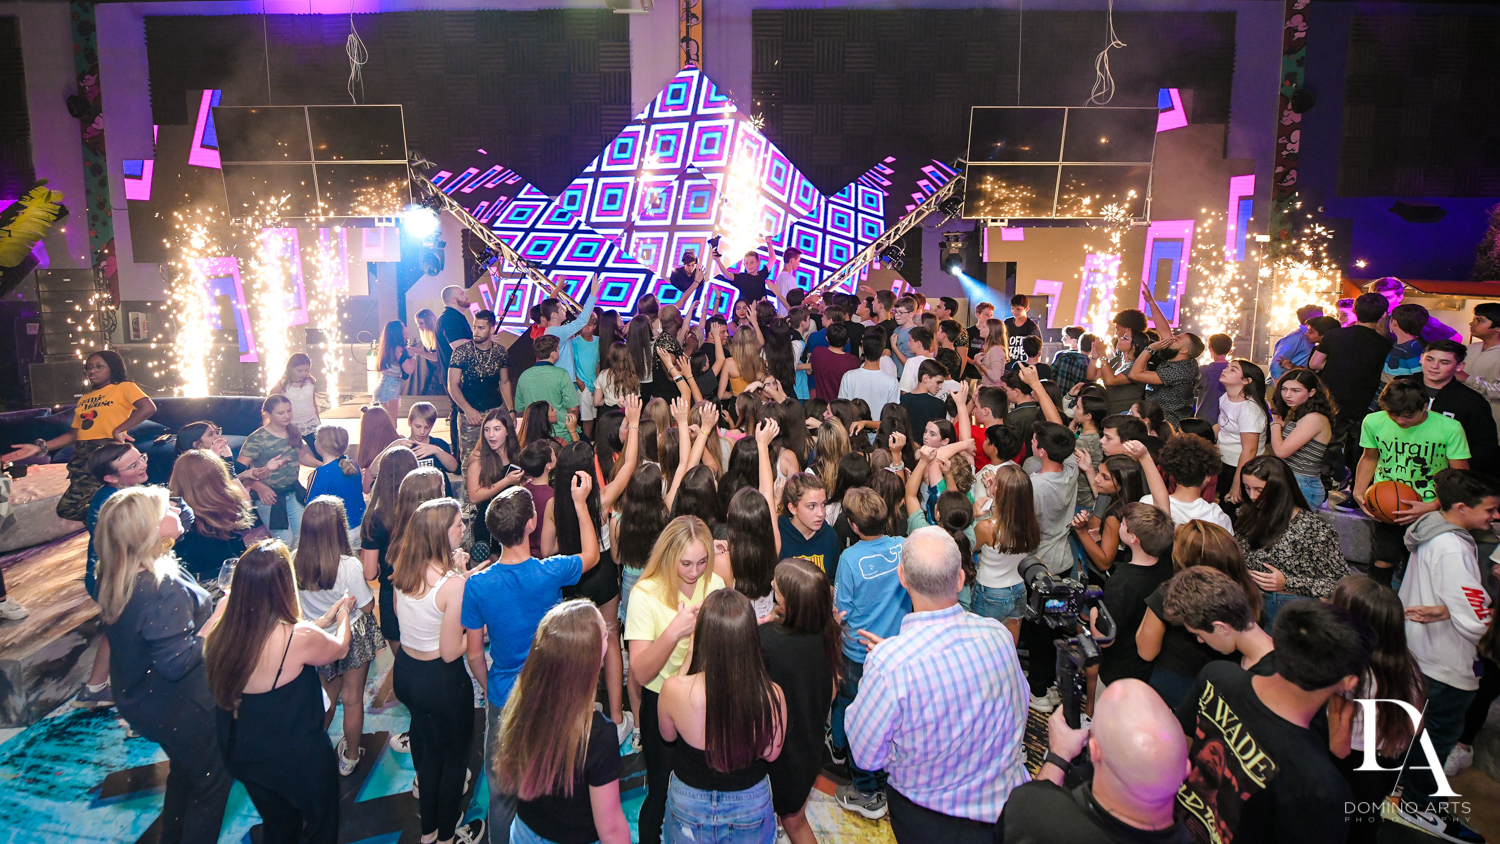 best party venue at Urban Graffiti BNai Mitzvah with celebrity Shaq at Xtreme Action Park by Domino Arts Photography